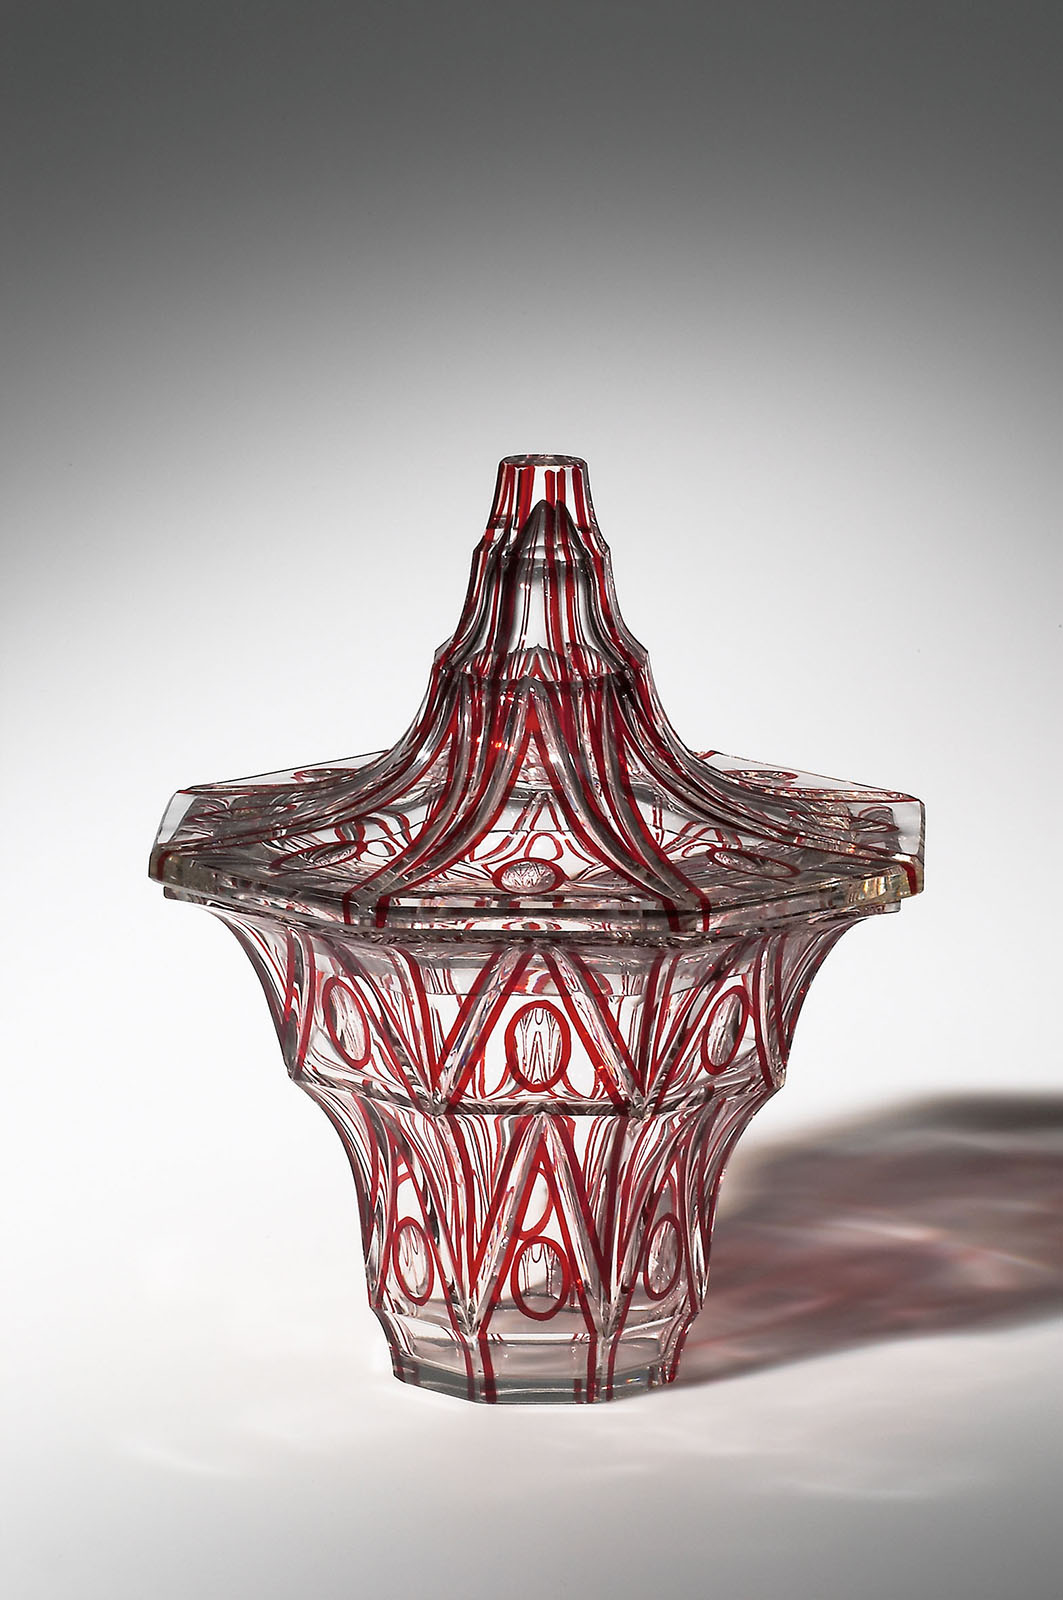 Vase with Lid, before 1916. Designed by Emanuel Josef Margold (Austrian, 1888–1962); manufactured by Carl Schappel. Glass, cased and cut. H. 22 cm, Diam. 18.3 cm. MAK, Austrian Museum of Applied Arts / Contemporary Art (WI 1716-1, 2). © MAK/Georg Mayer.